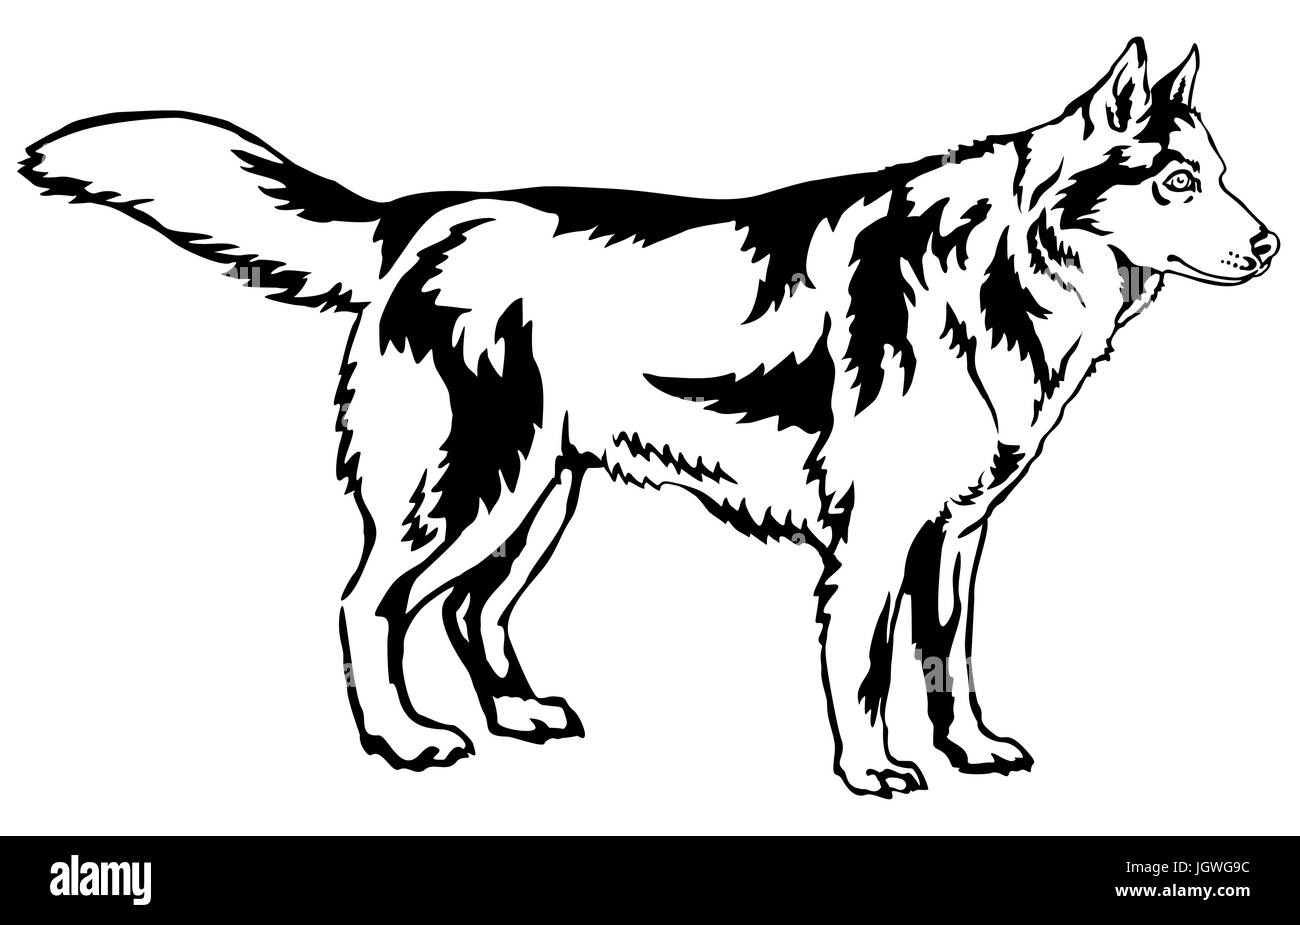 Decorative portrait of standing in profile dog Siberian husky, vector isolated illustration in black color on white - Stock Vector